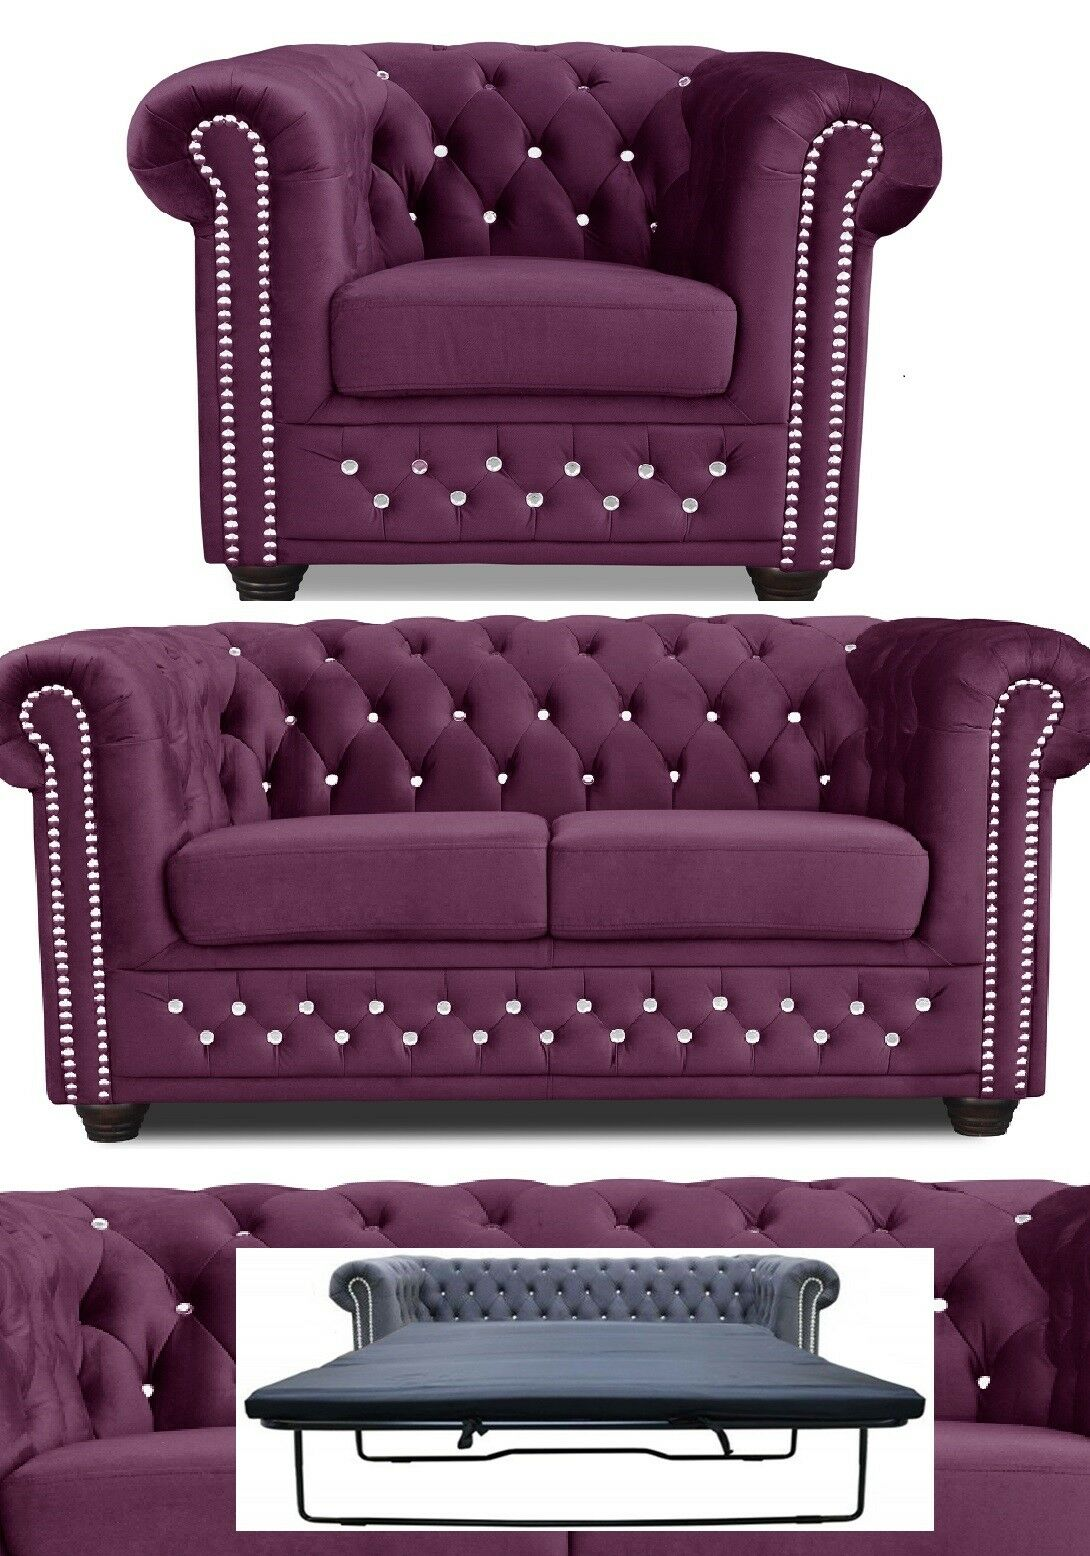 Chesterfield Sessel Stoffbezug Couch Mit Sessel Möbel